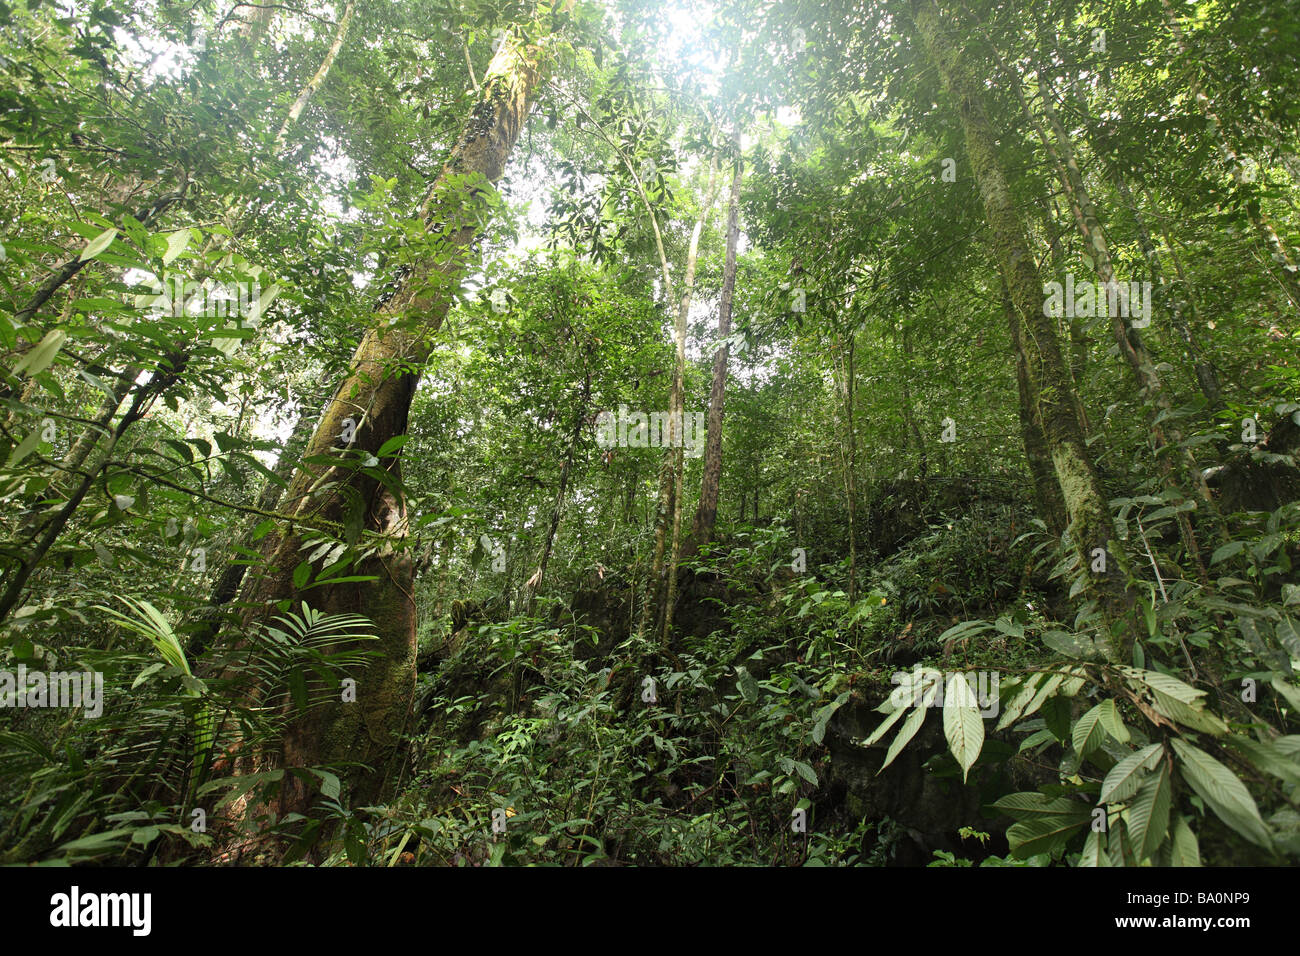 Thick vegetation covers the floor deep inside the jungle on the island of Borneo - Stock Image